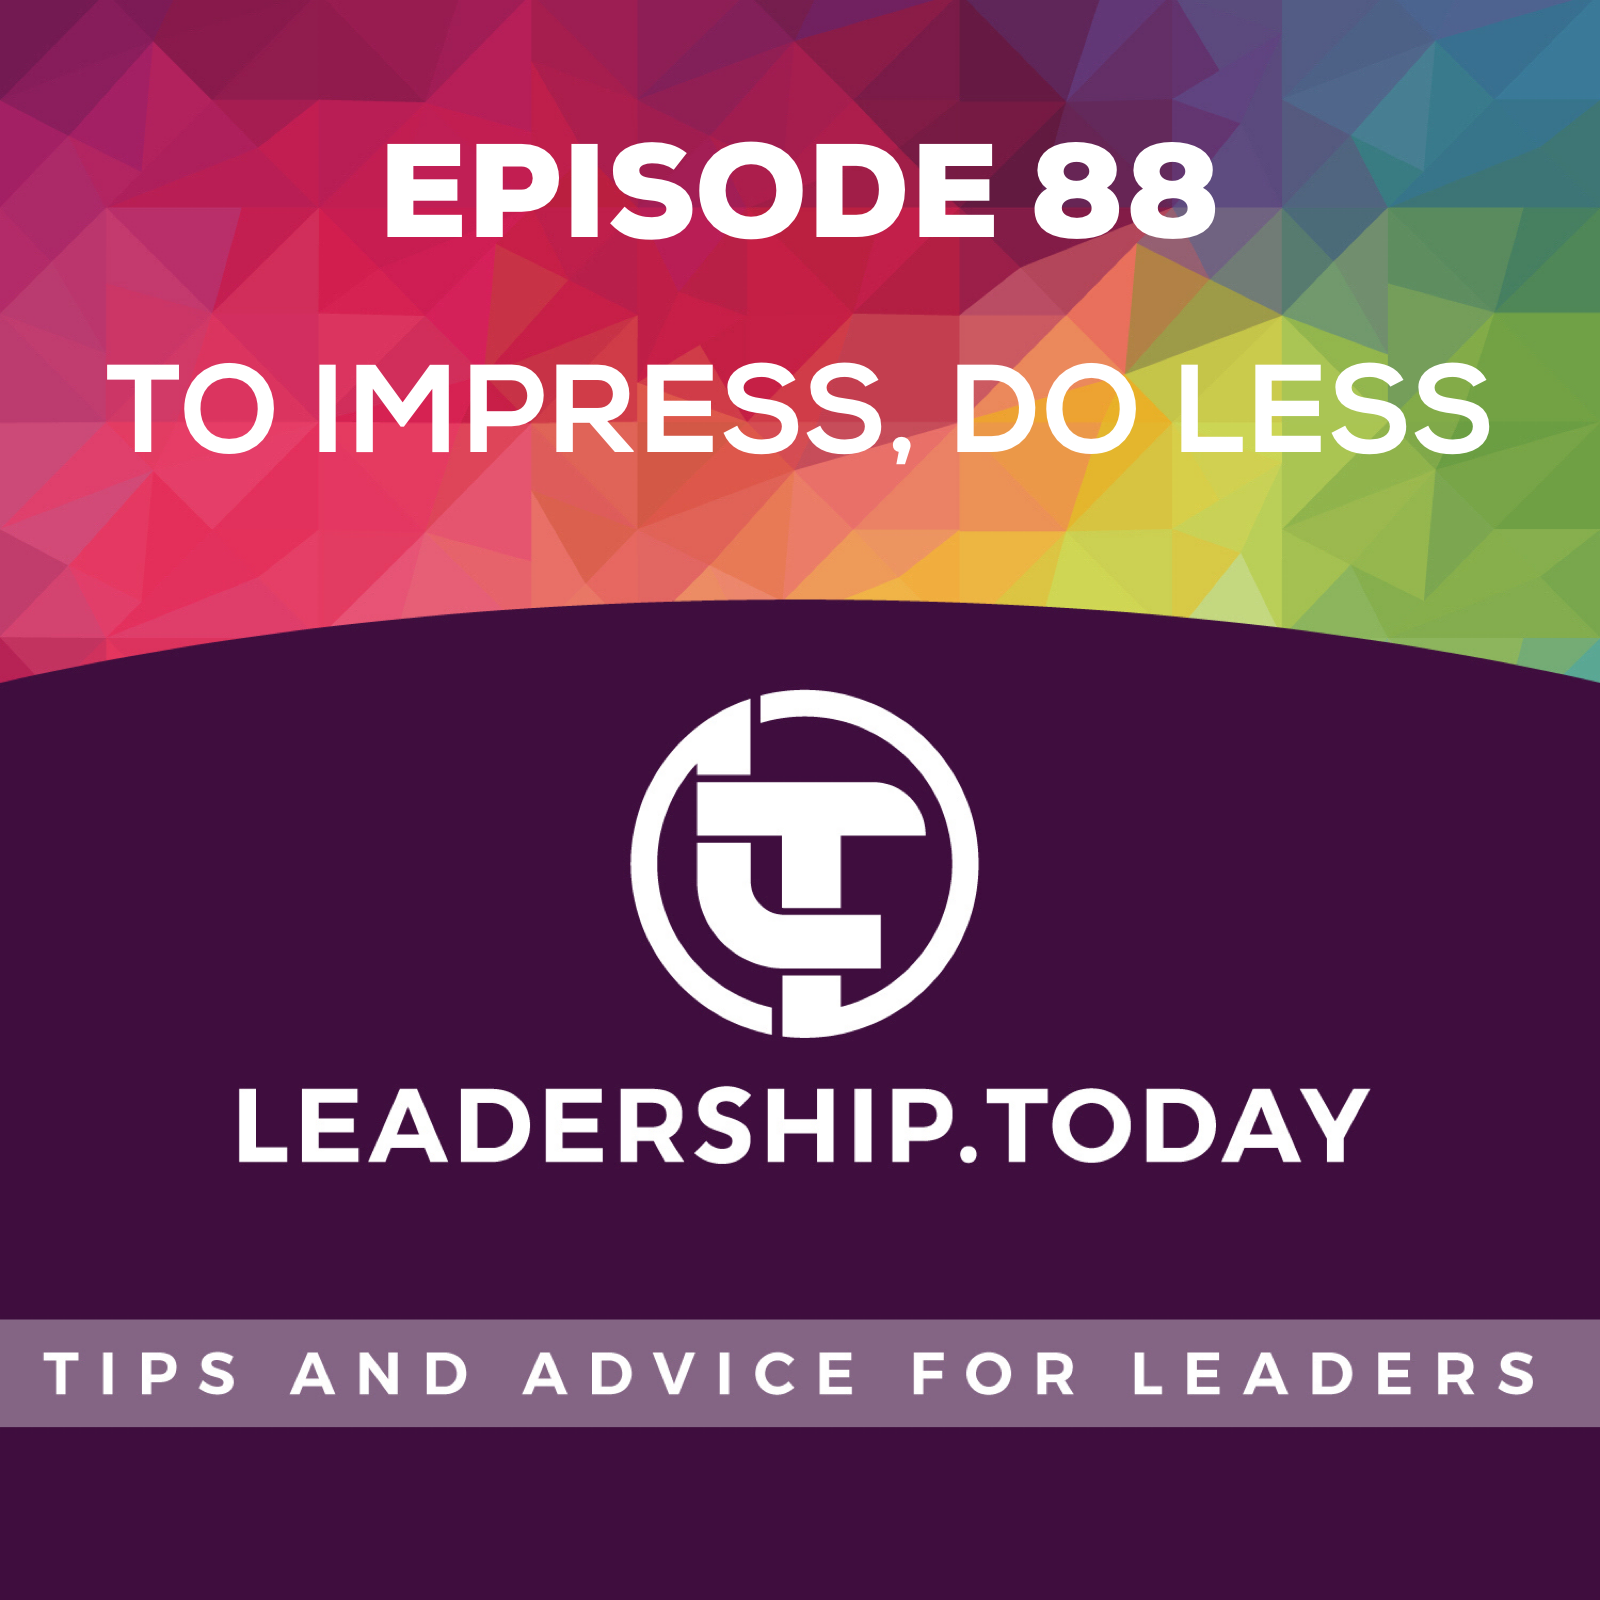 Episode 88 - To Impress, Do Less